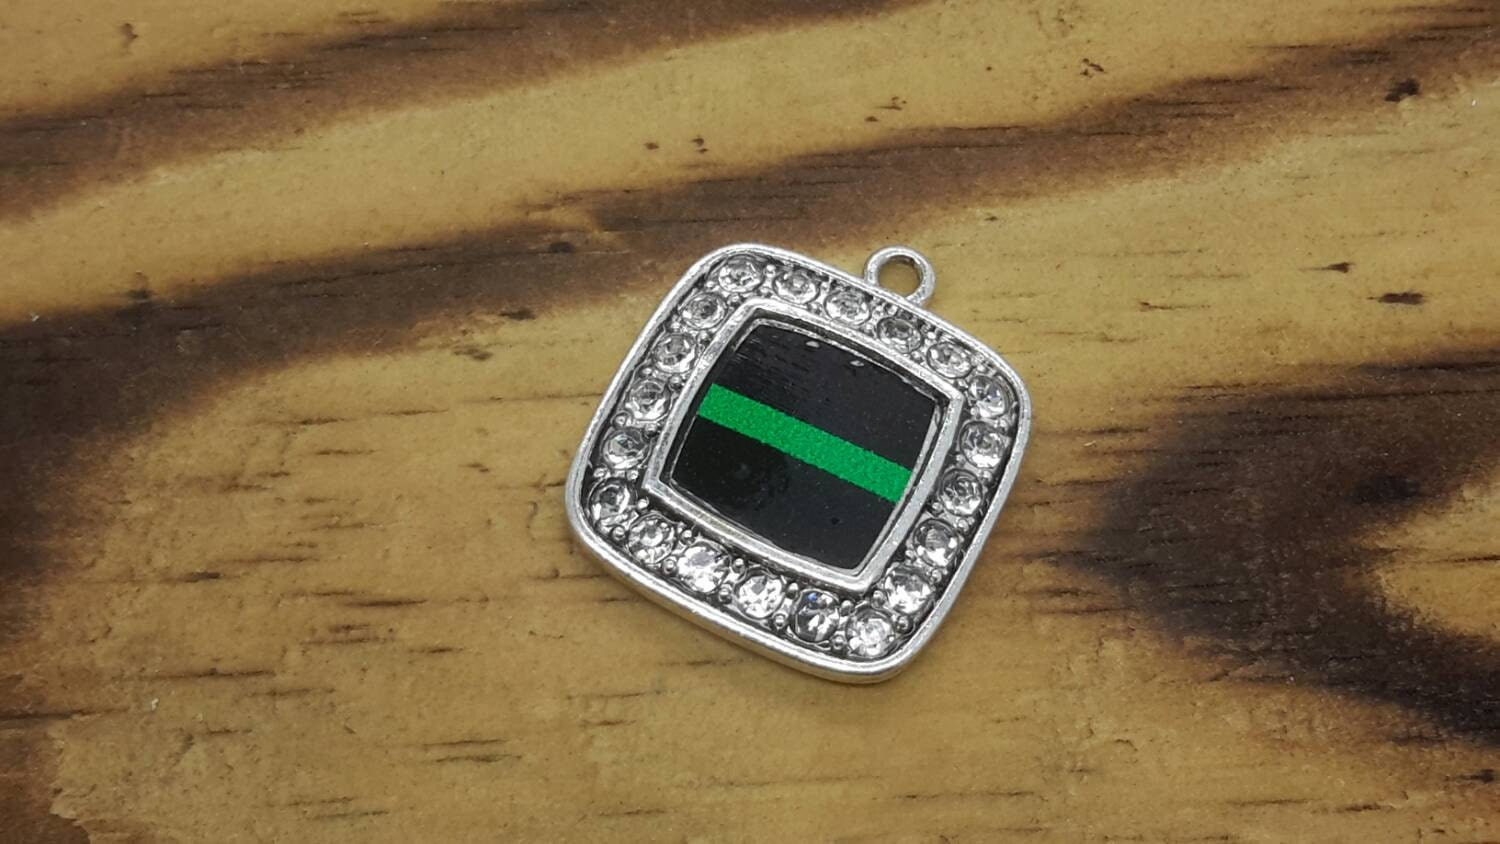 Thin green line charms florida law enforcement sheriffs police thin green line charms florida law enforcement sheriffs police charms charm supplies charm pendants jewelry findings close out sale aloadofball Images